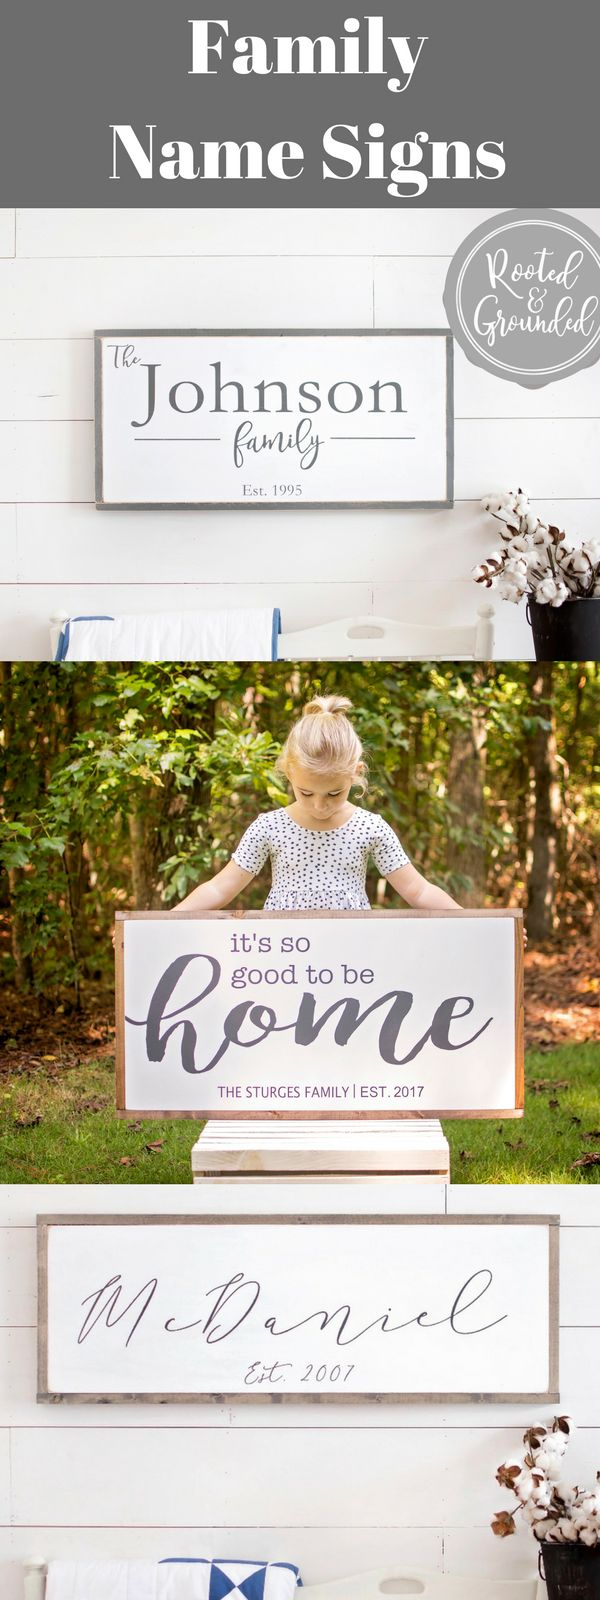 family name sign   last name sign   set. sign  it's so good to be home   wedding gift   housewarming gift   last name set. sign   front entry decor   family sign   rustic name sign